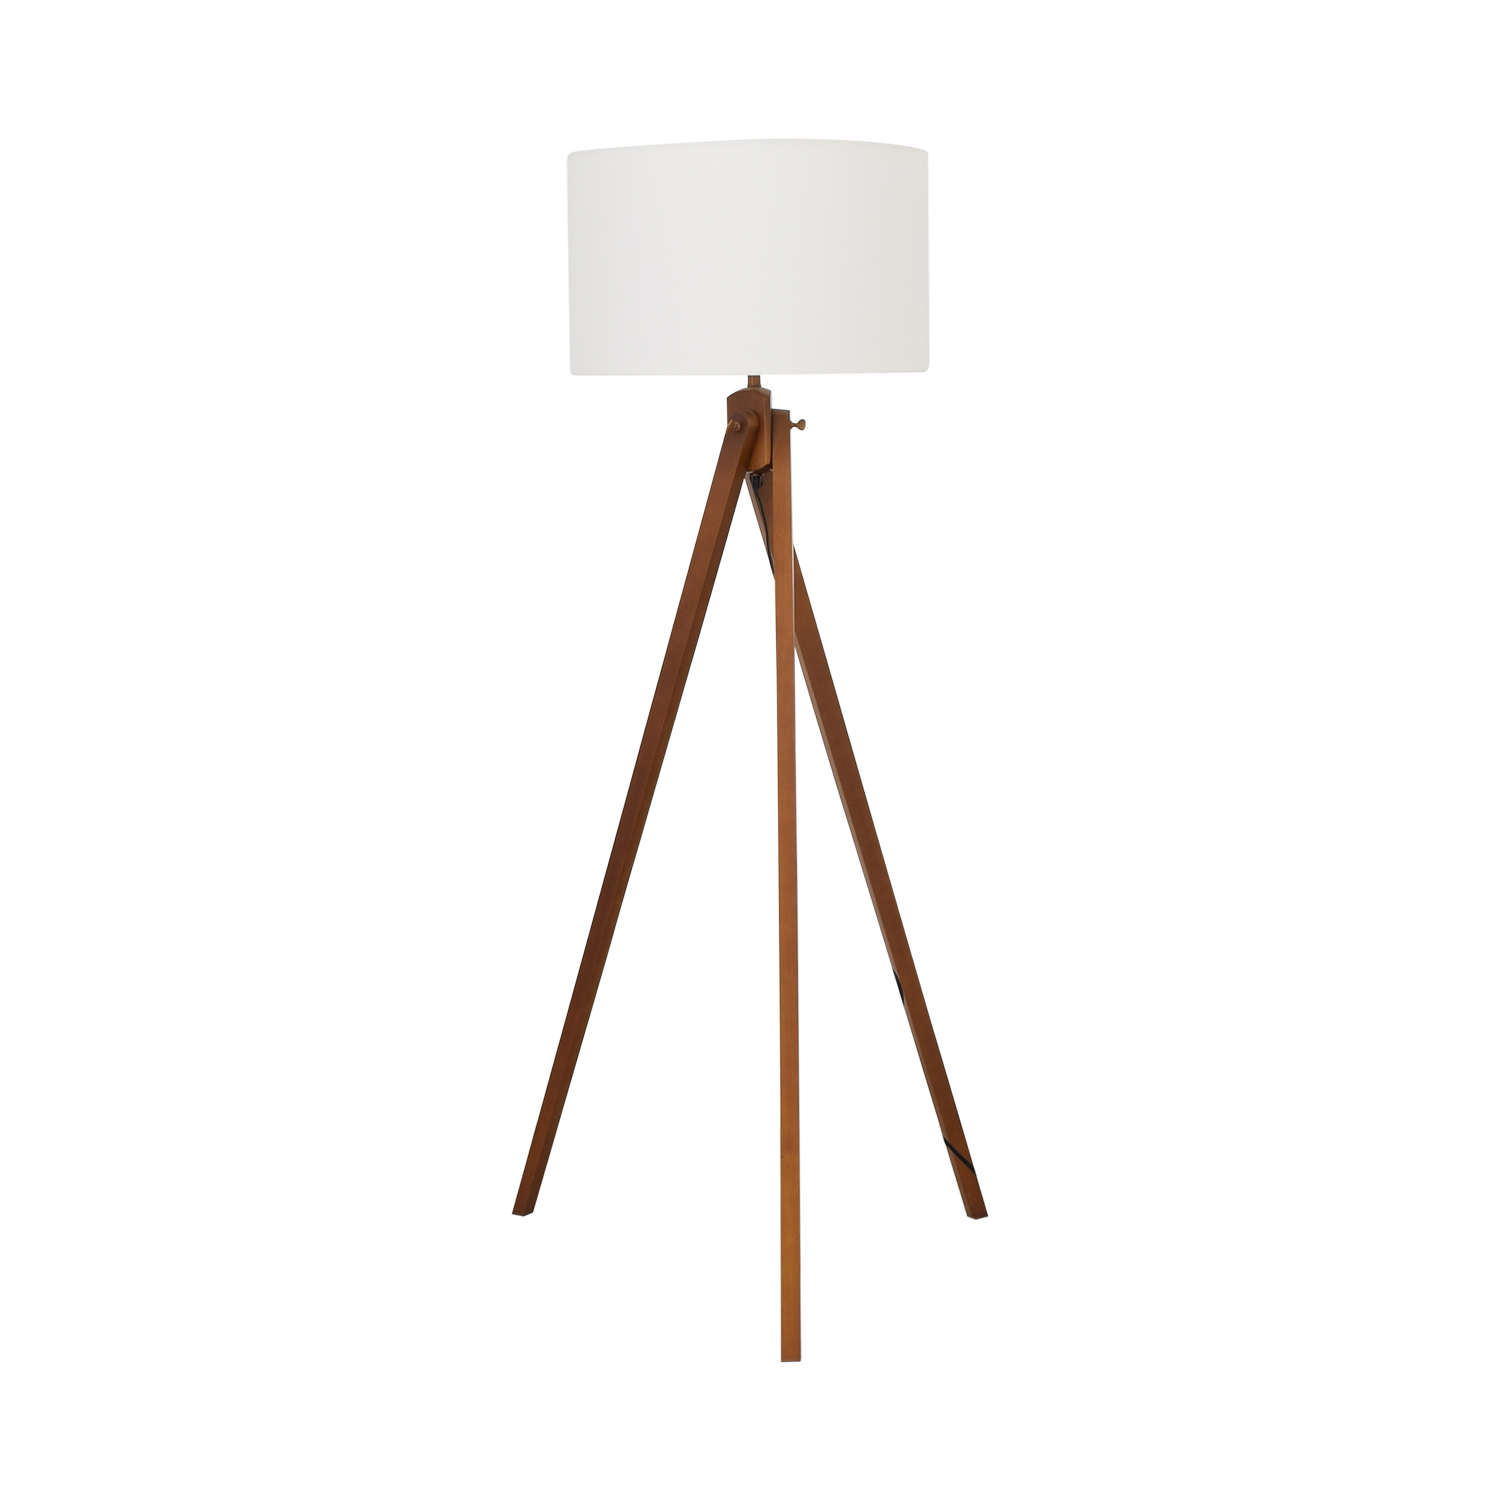 Modani Boden Floor Lamp sale